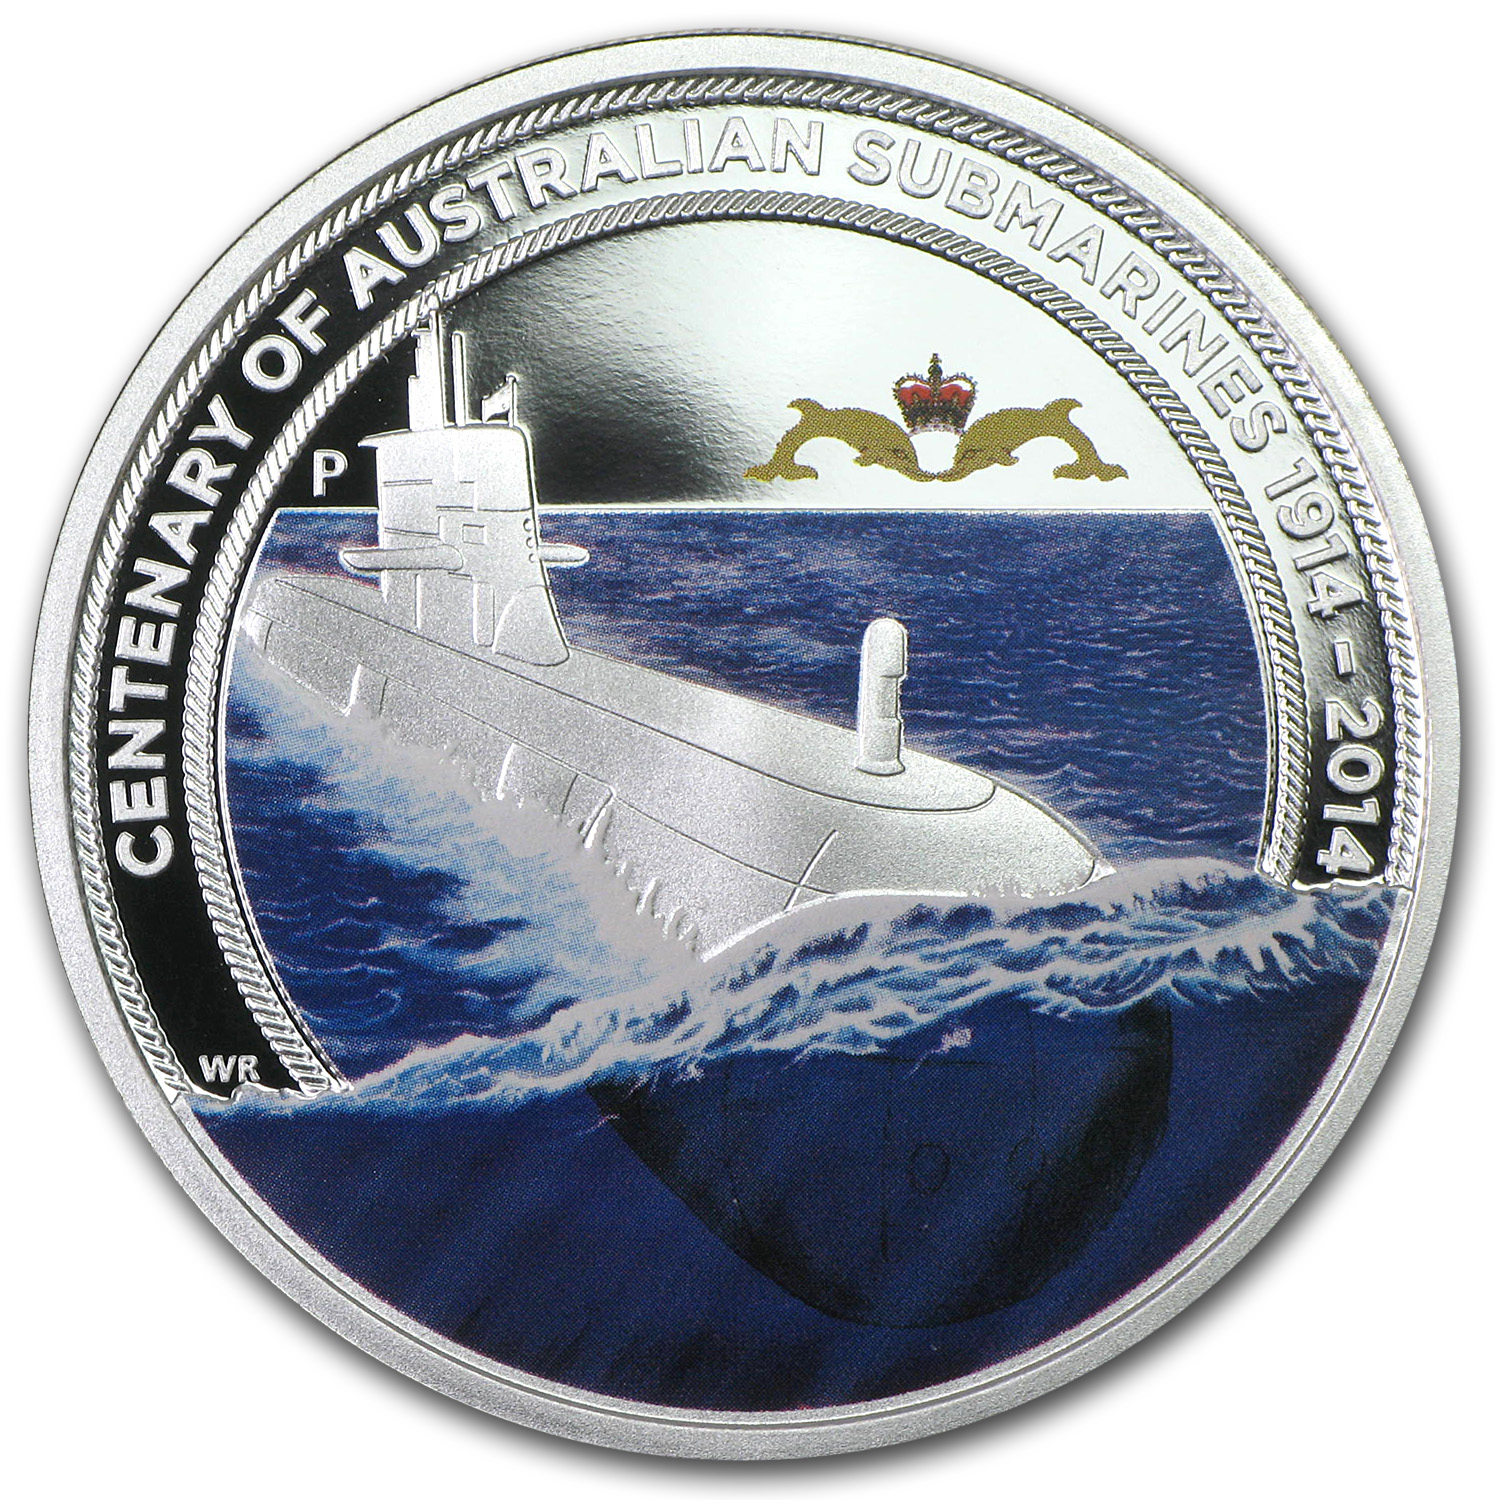 2014 1 oz Silver Proof Centenary of Australian Submarine Service